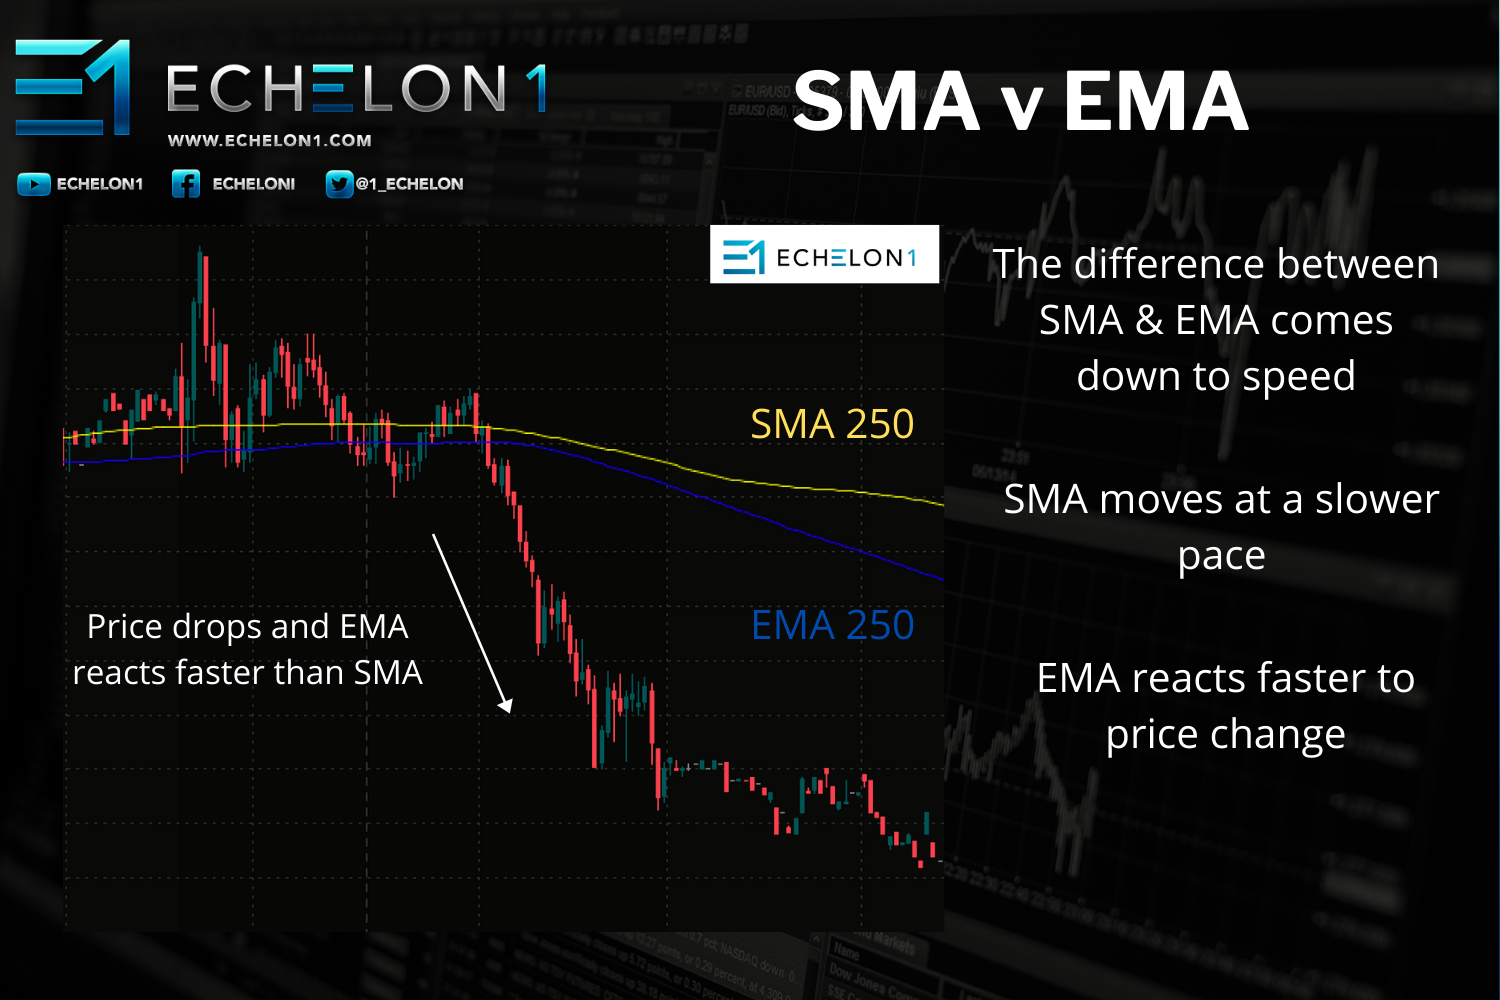 INFOGRAPHIC - Moving Averages - THE DIFFERENCE BETWEEN SMA AND EMA